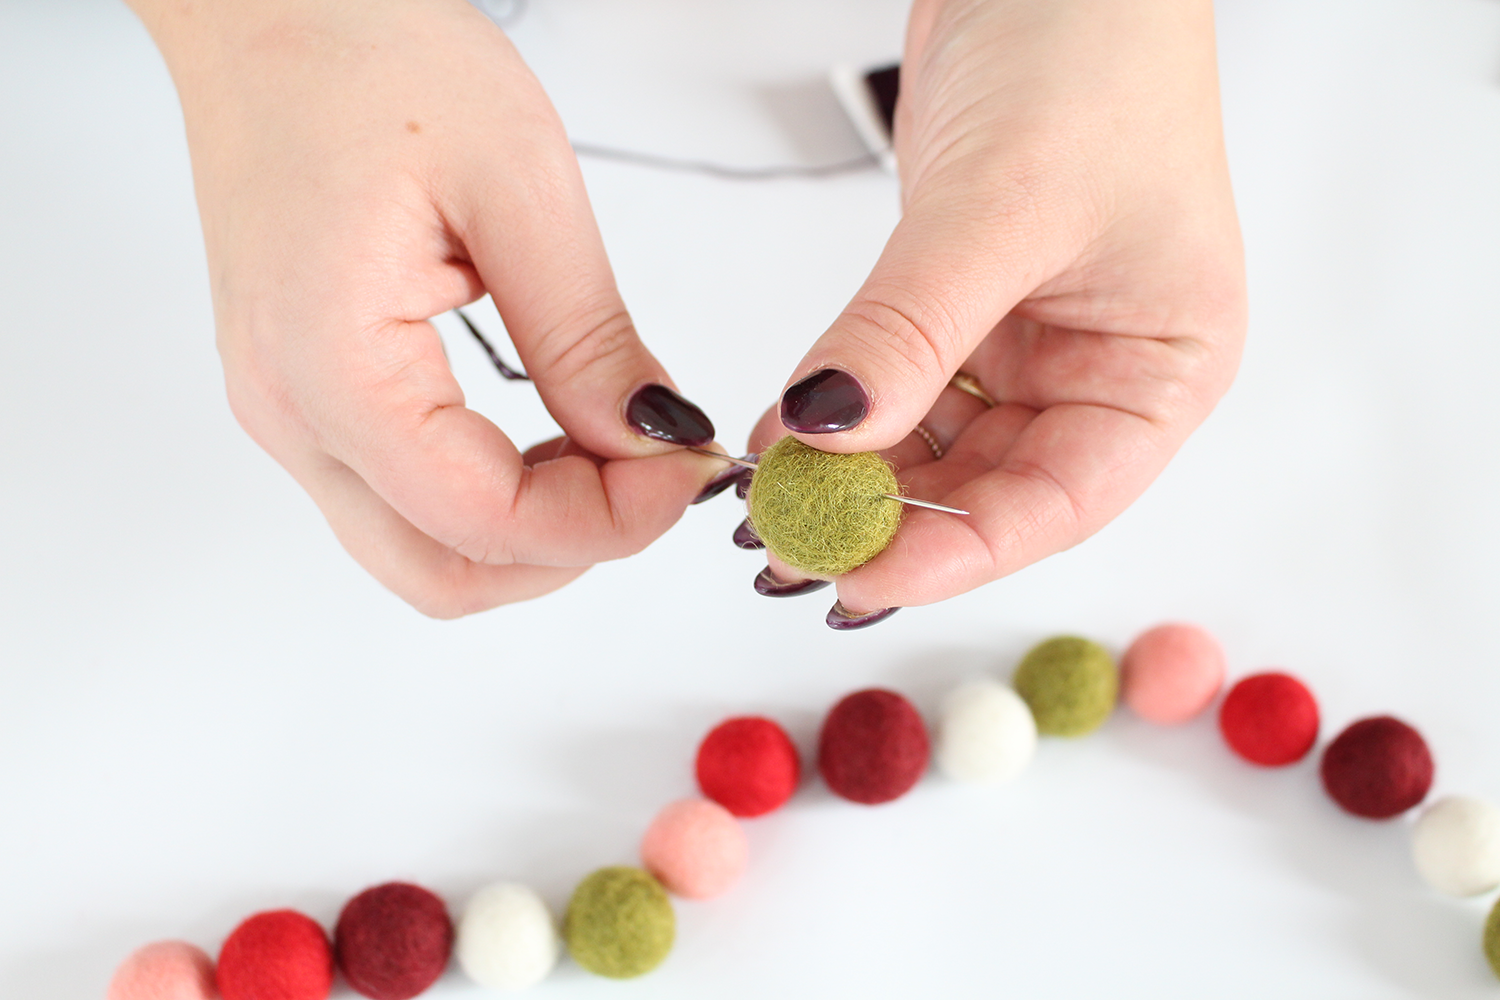 String felt balls onto embroidery floss for an easy DIY felt garland